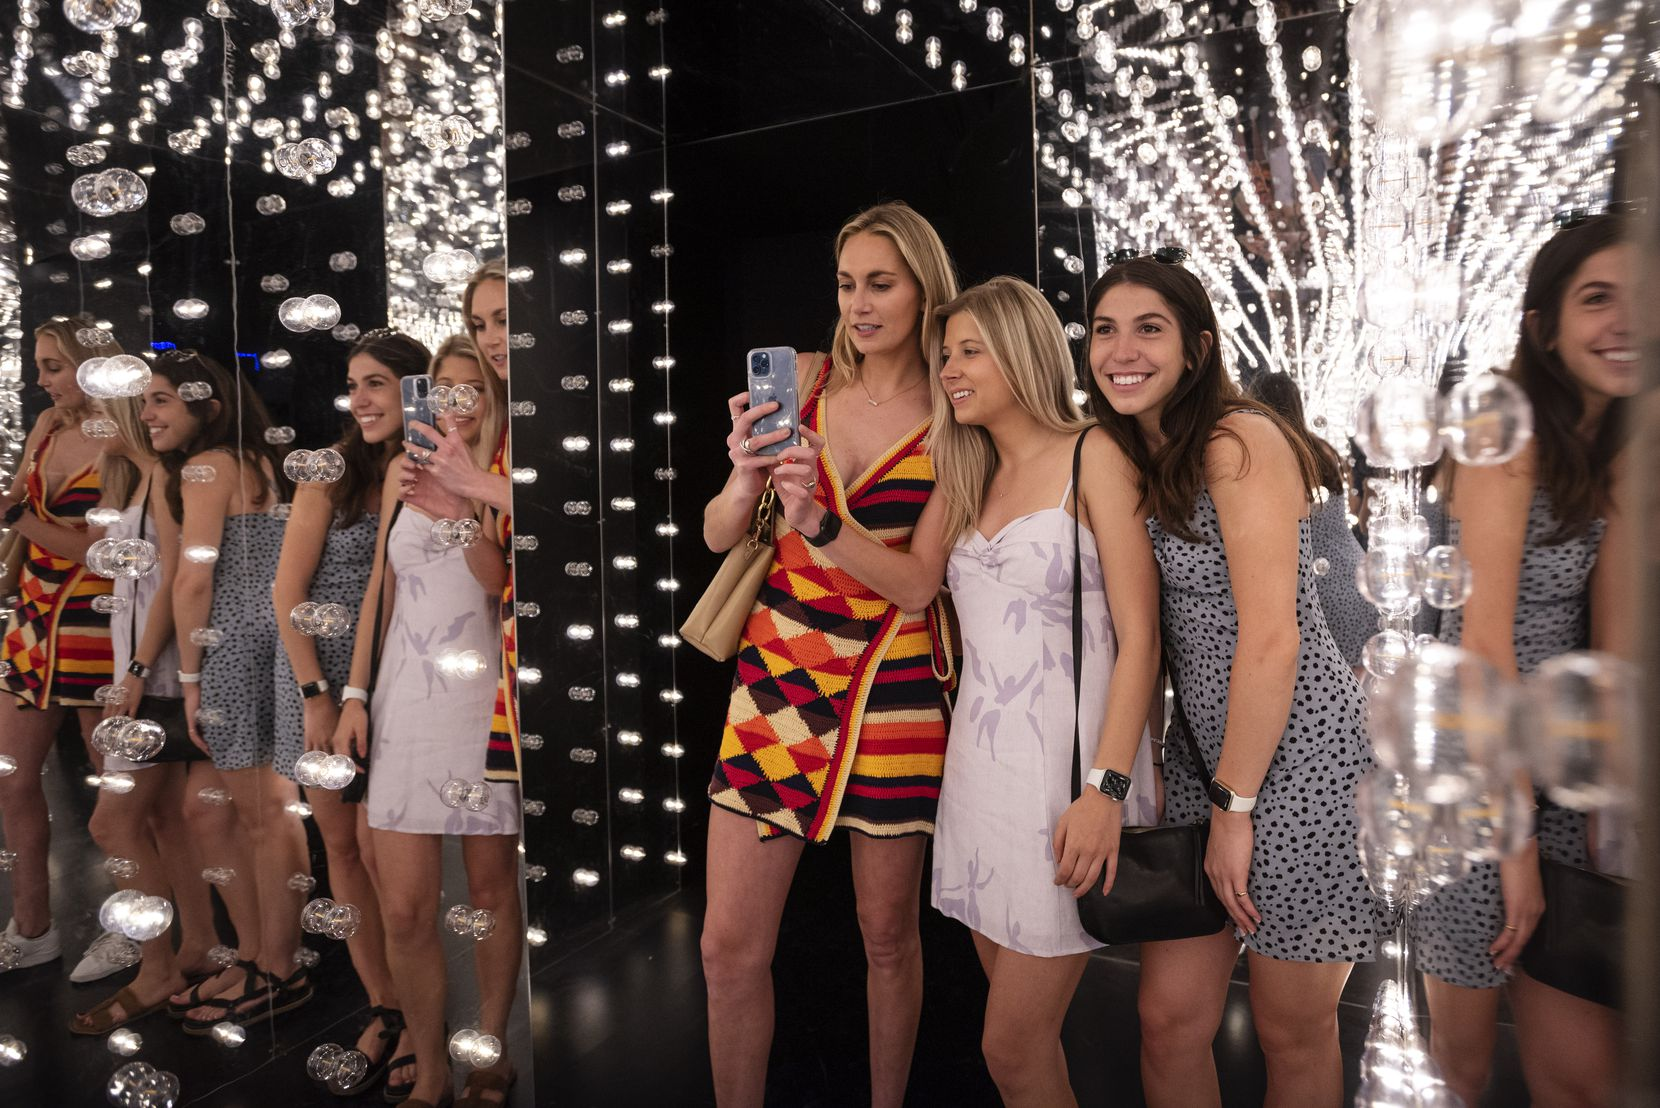 Haley Bonneval (from left), Melissa Krumdick and Kate Ferrara pose for photos in a reflective maze at Pop! by Snowday at Galleria Dallas. The installation has more than two dozen scenes where ticket holders can take fun selfies and lively group shots.